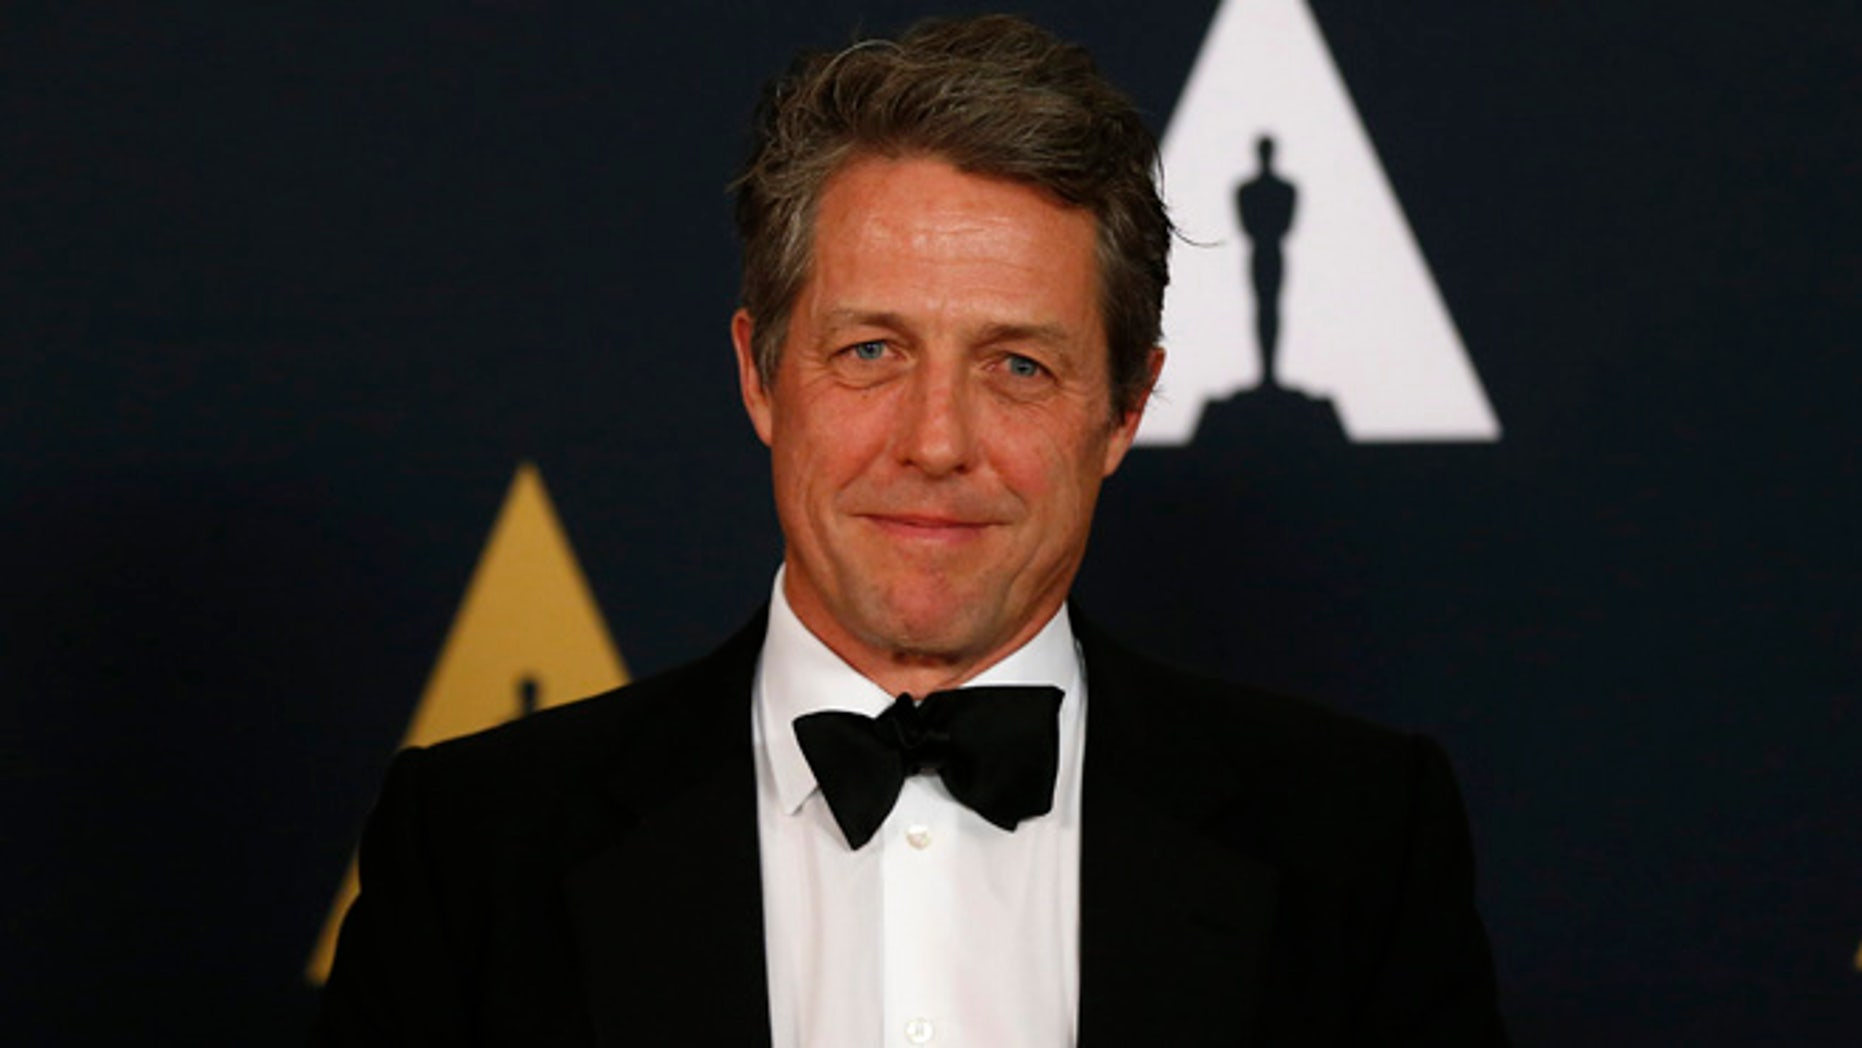 Hugh Grant says becoming a father at age 50 changed his disposition.